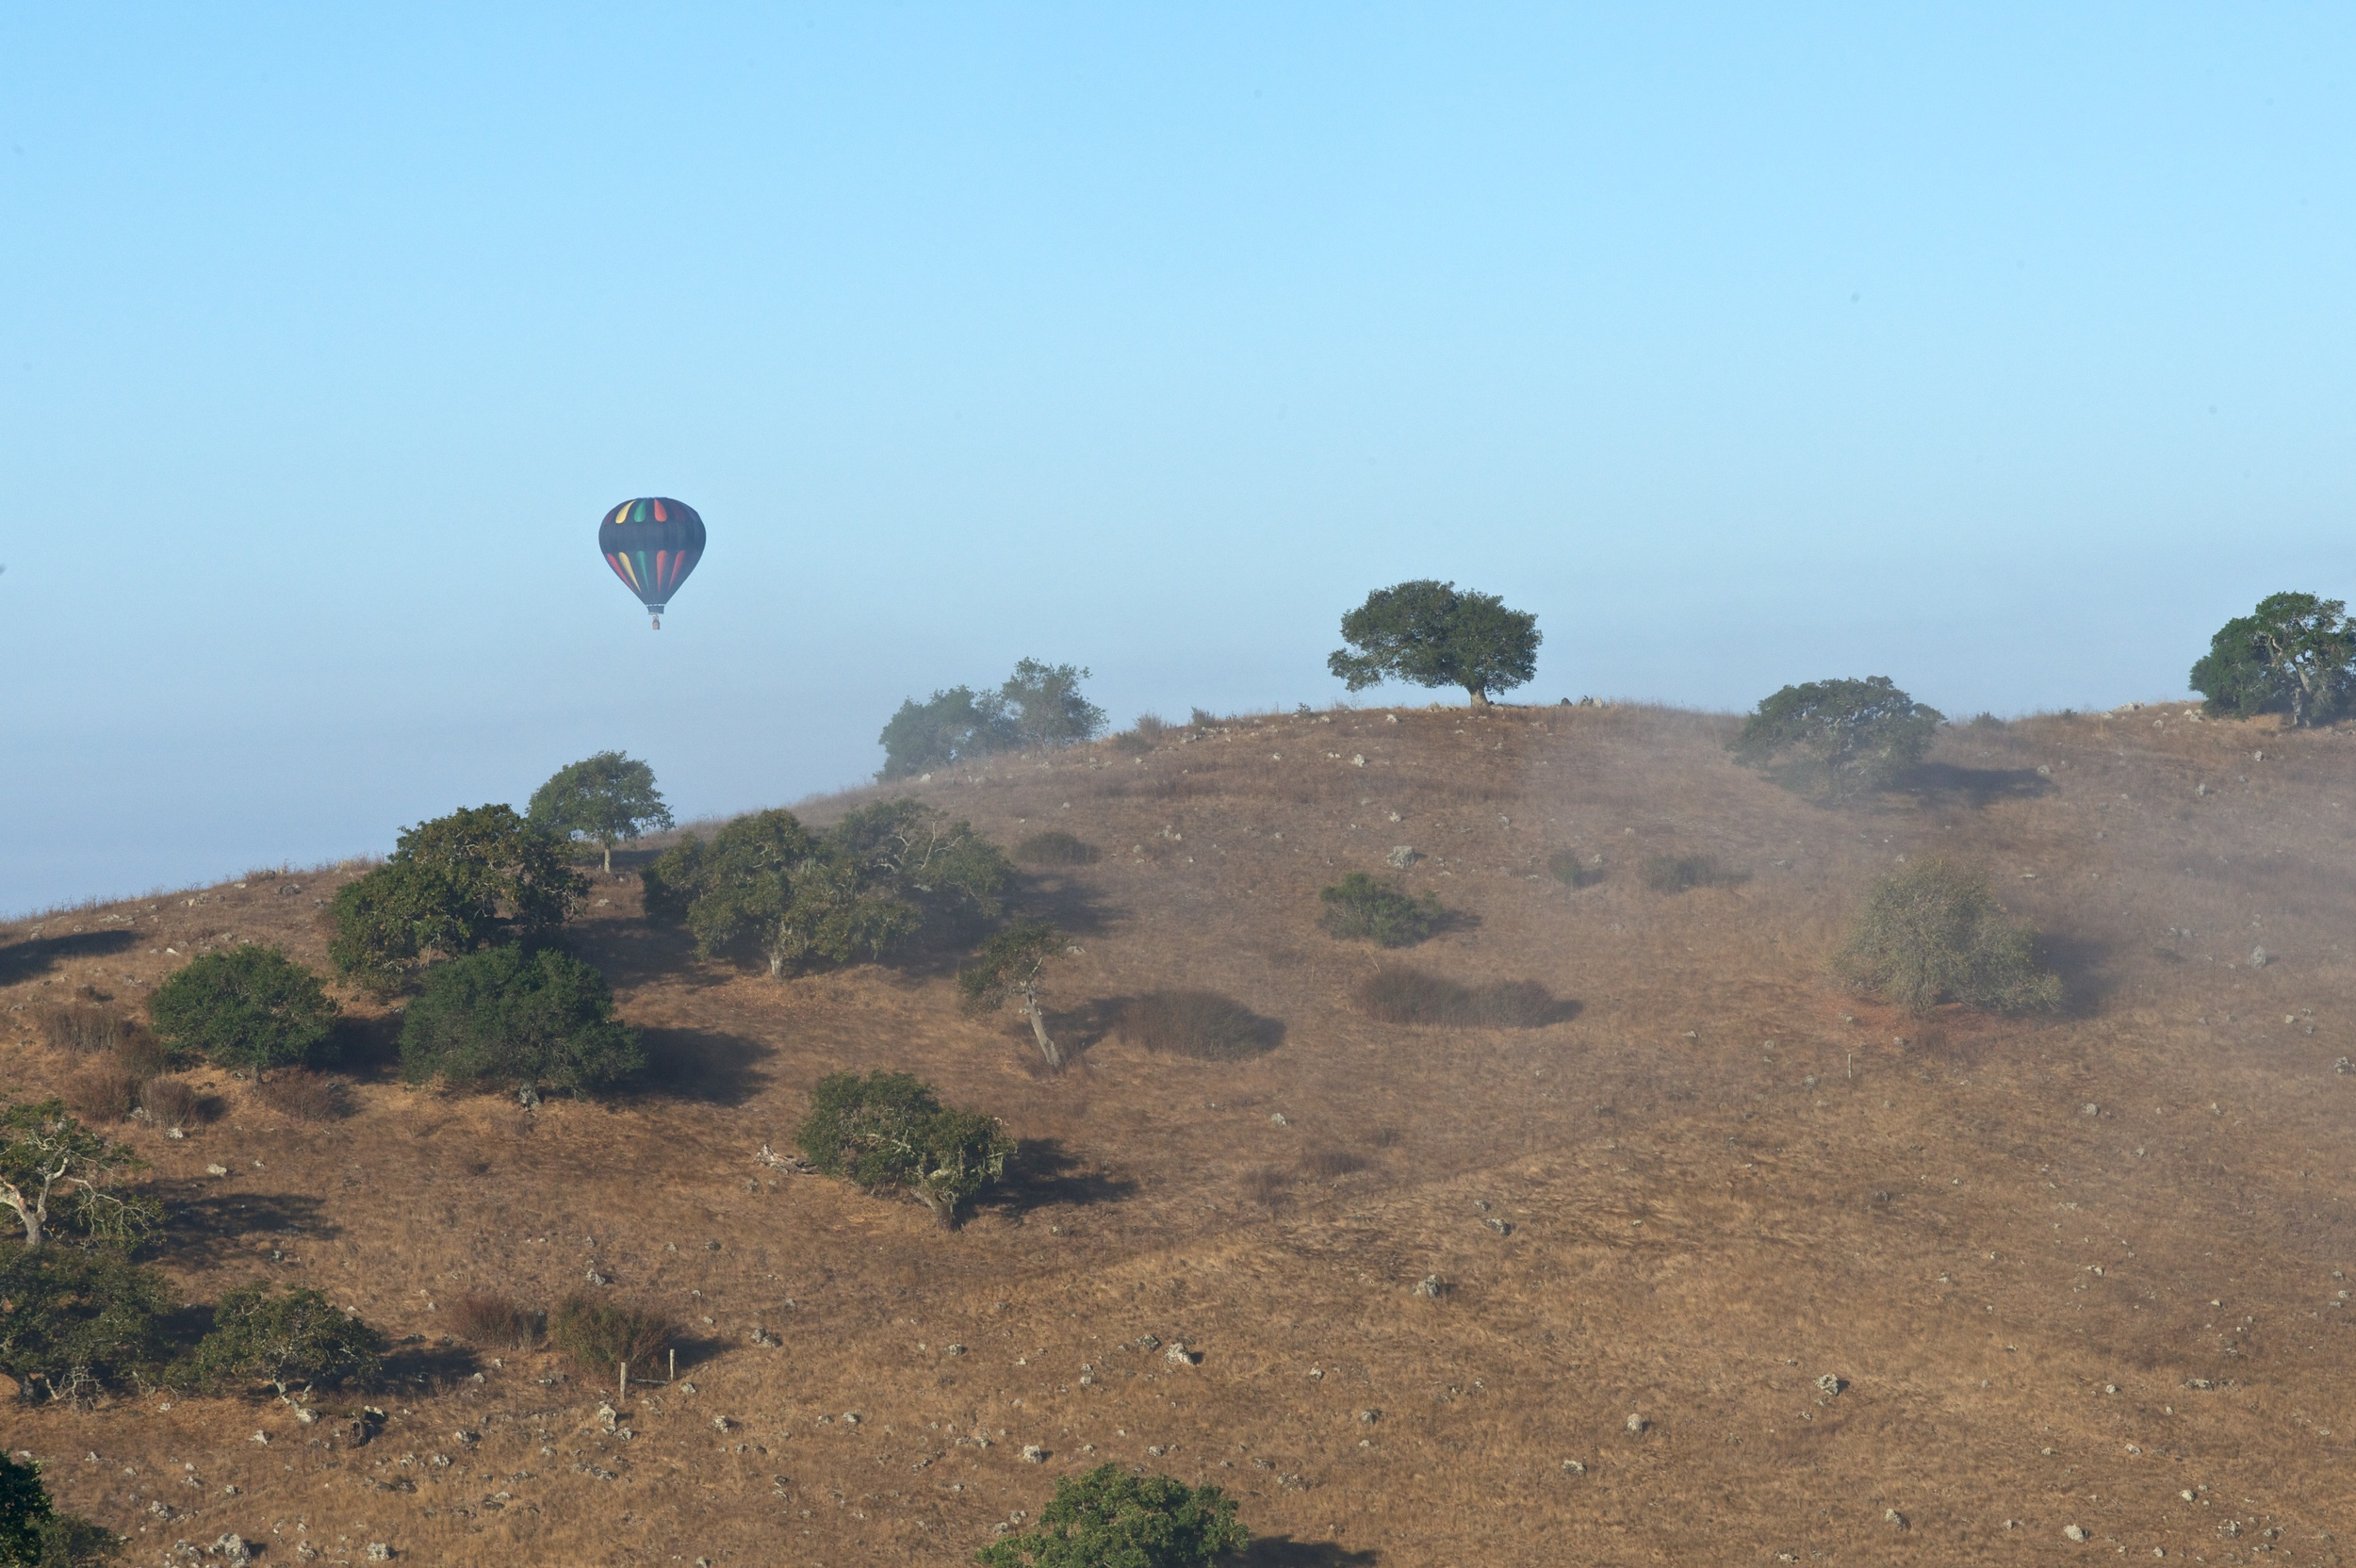 BALLOON OVER THE HILLS